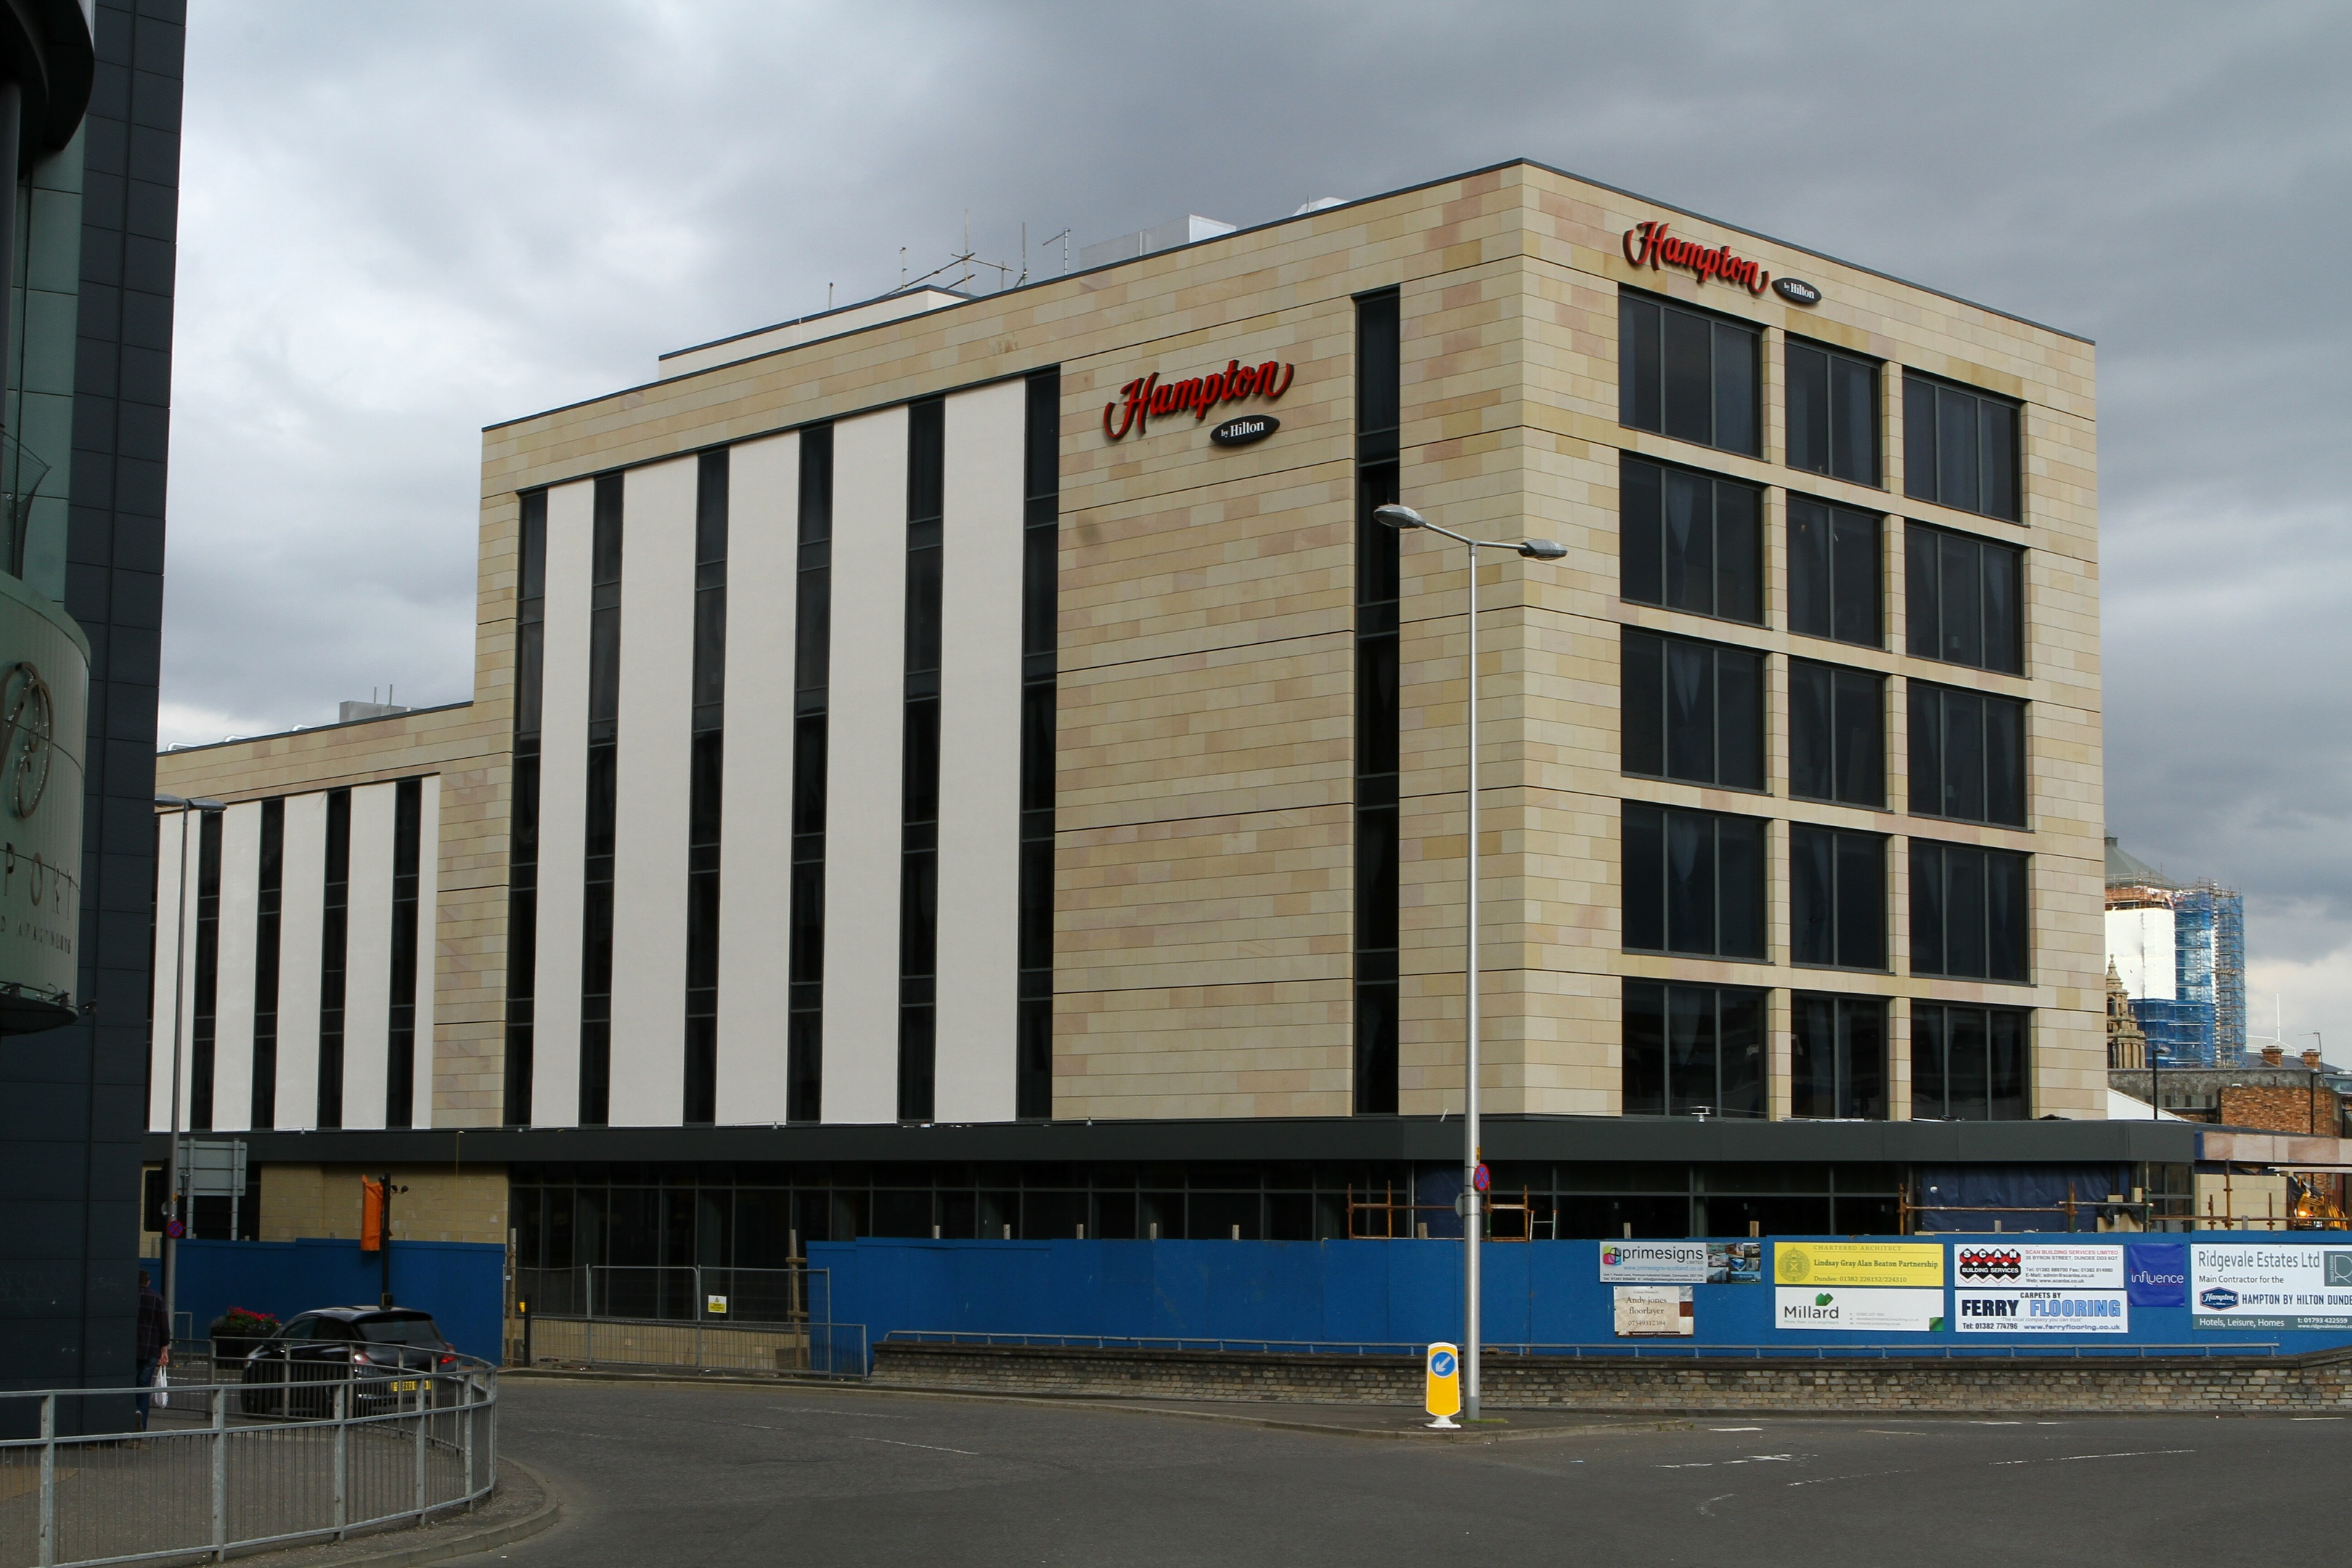 The new Hampton by Hilton Hotel.